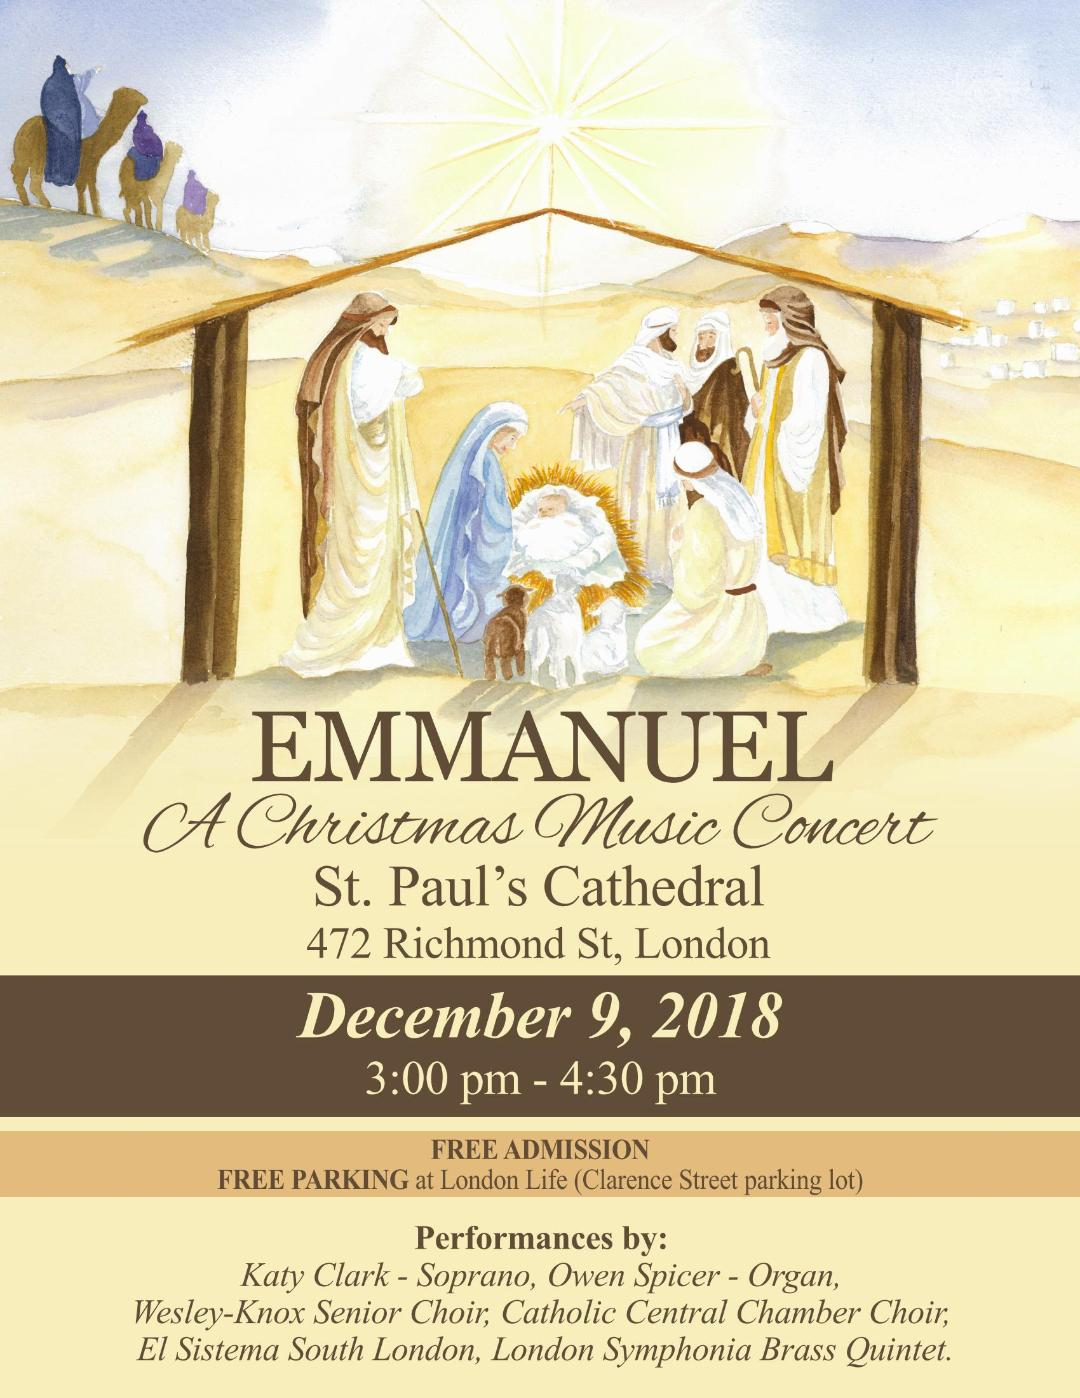 Emmanuel Concert at St. Paul's